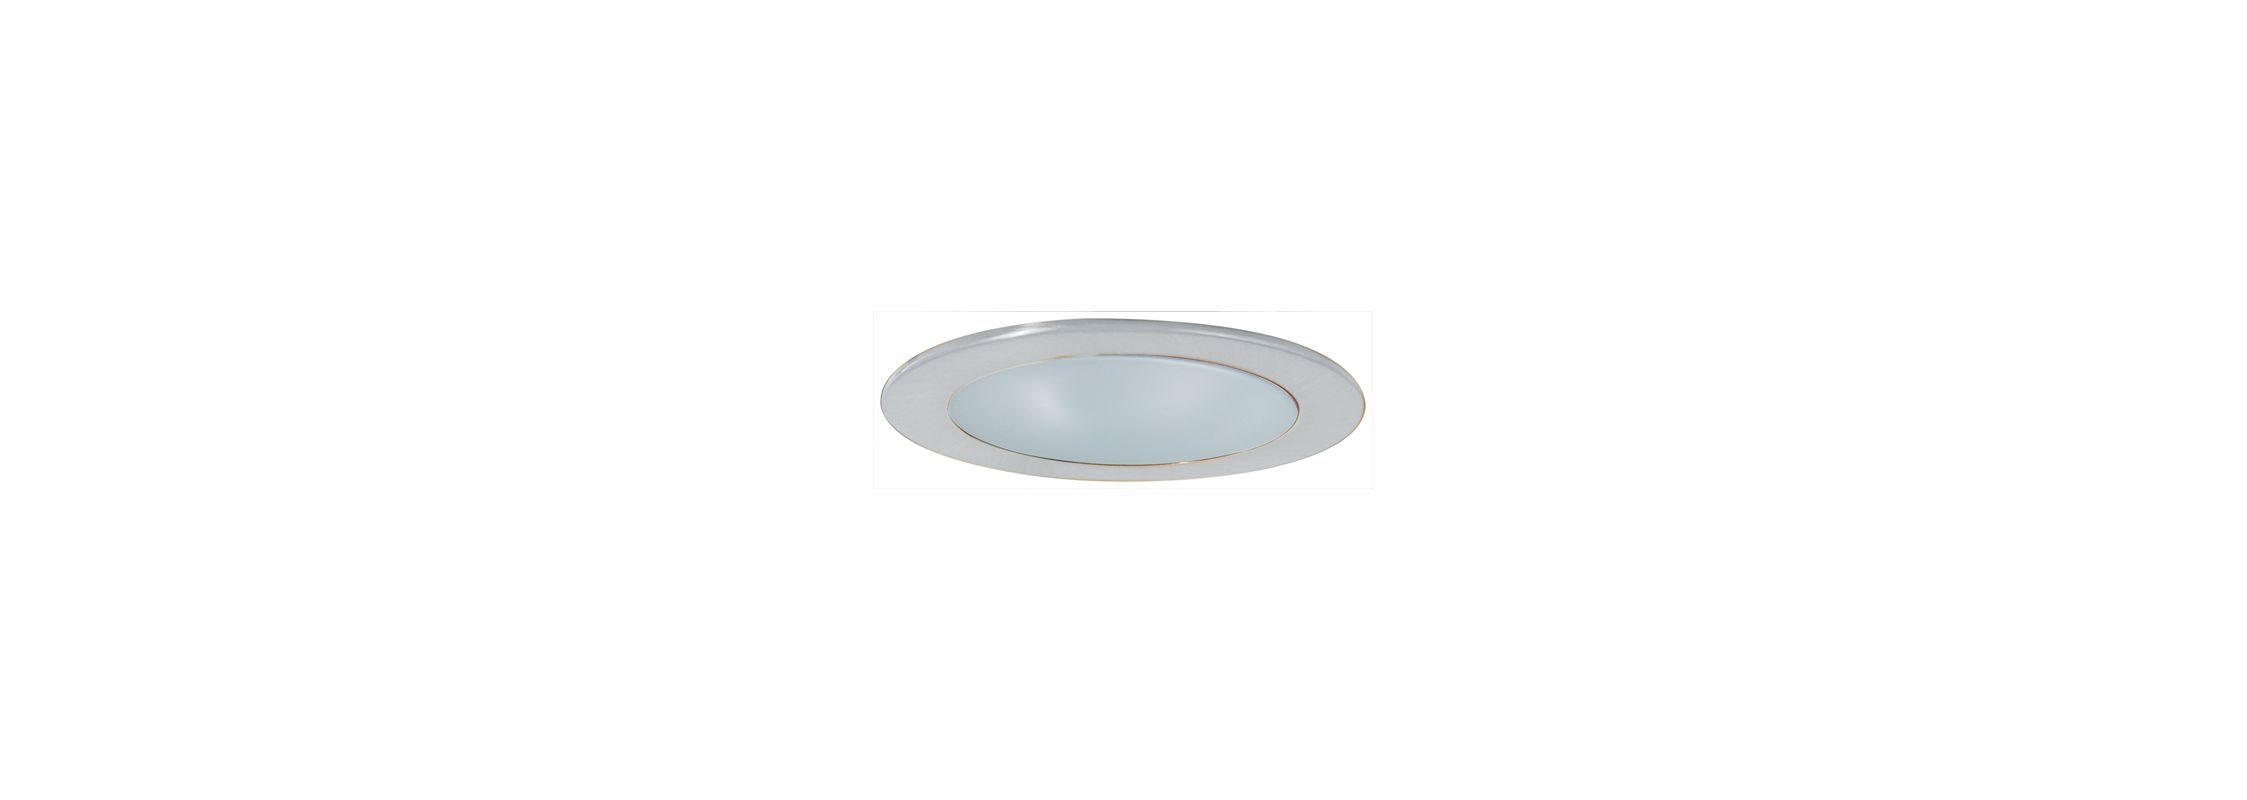 "Elco EL9112 4"" CFL Shower Trim with Frosted Lens and Reflector Nickel"